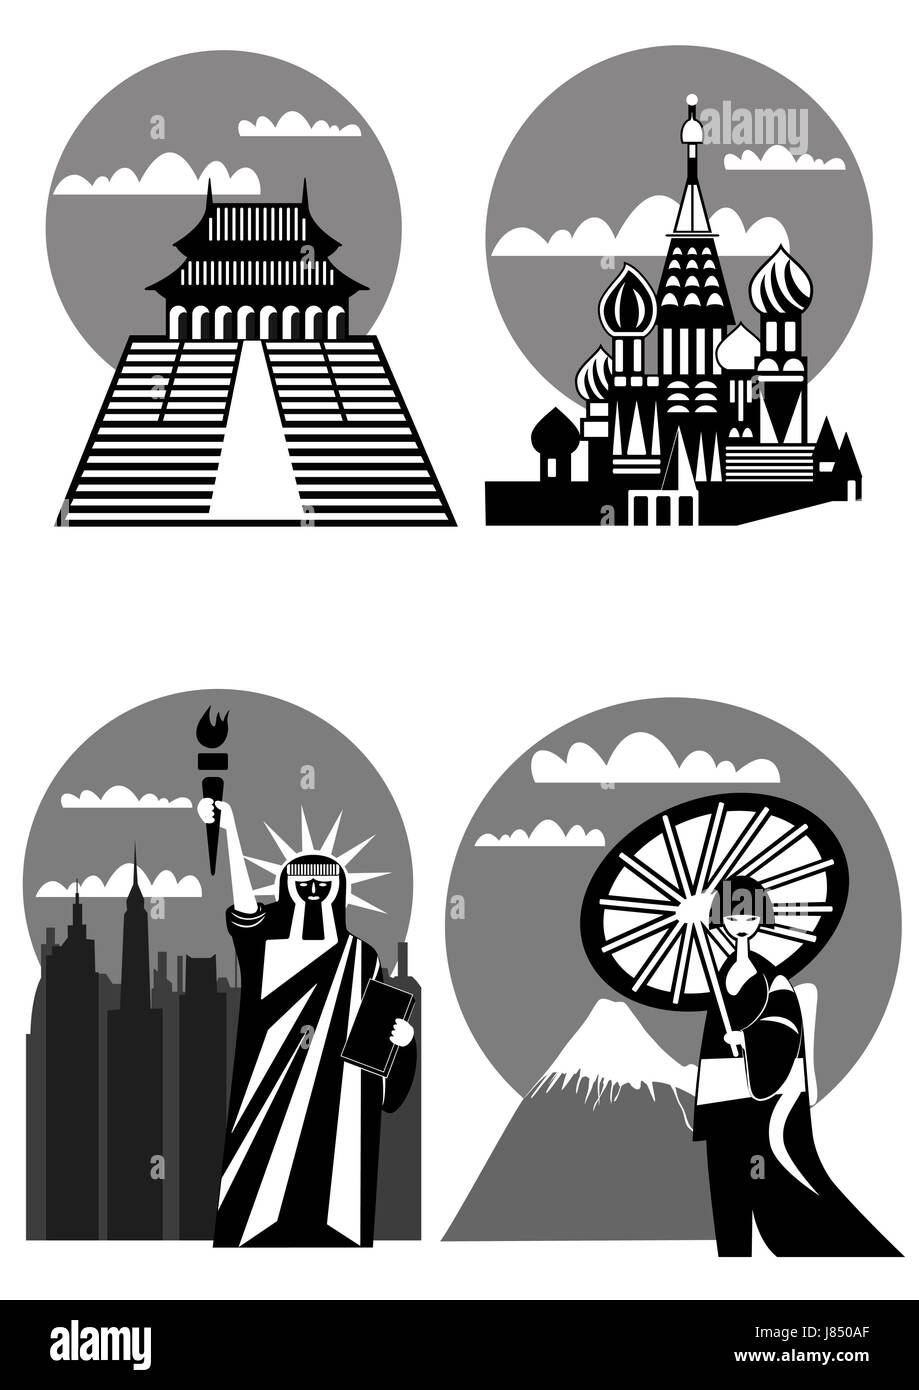 usa japan statue of liberty sign logo new york moscow house building tower Stock Photo